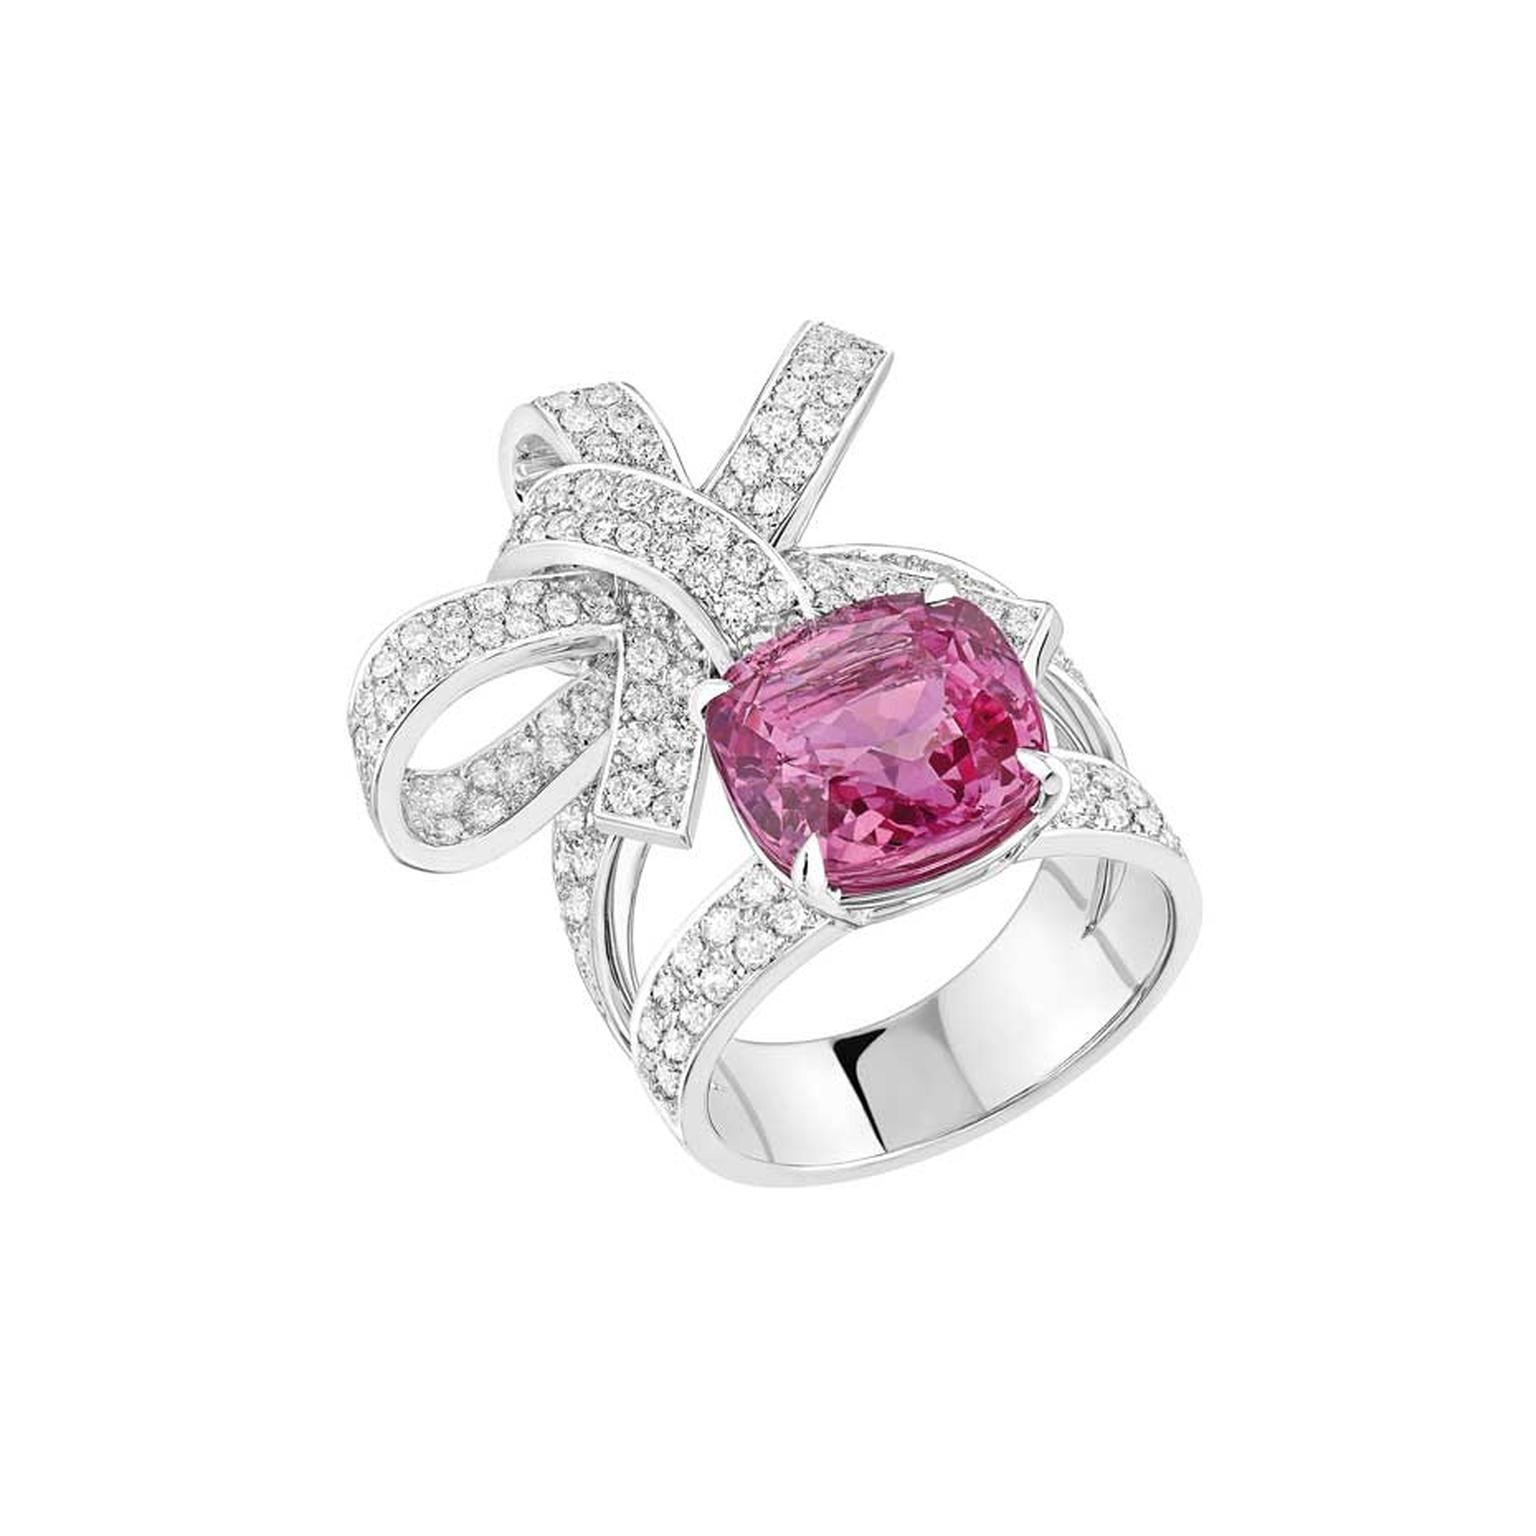 The Chanel Ruban ring is also available with an 8.00ct cushion-cut pink sapphire and 174 brilliant-cut diamonds.